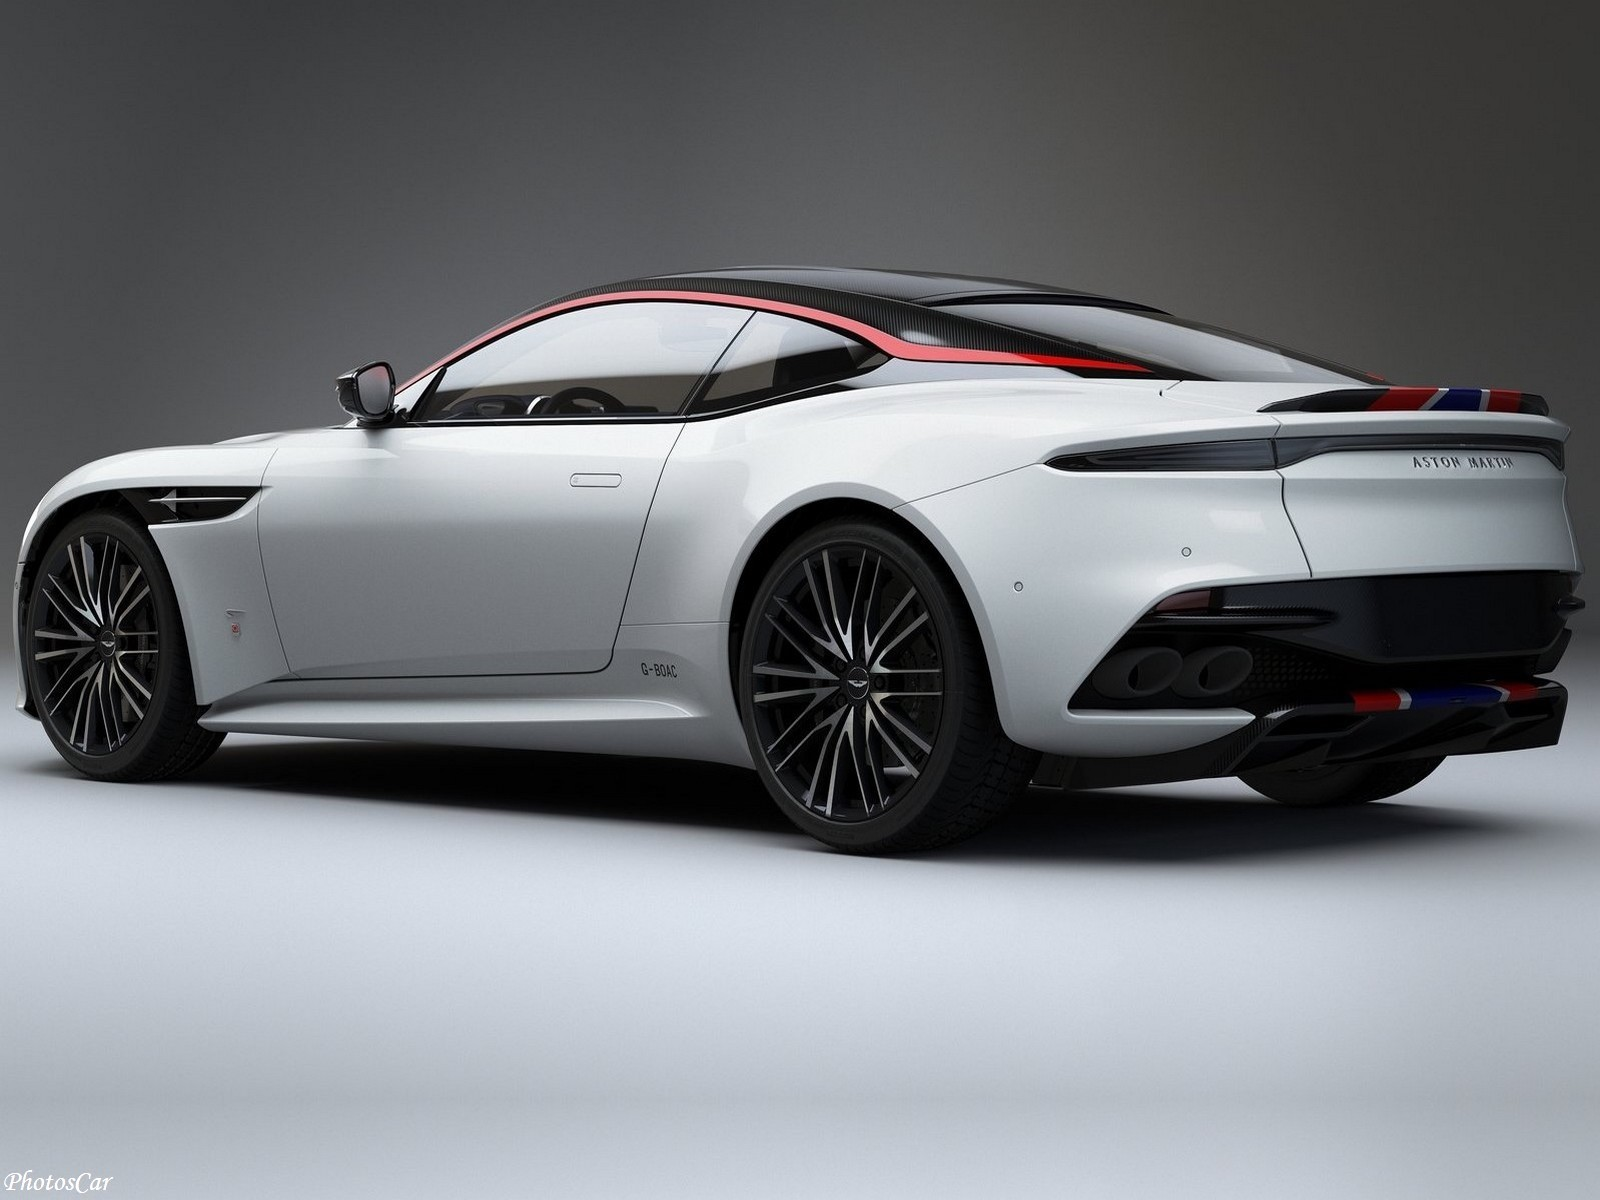 Aston Martin DBS Superleggera_Concorde Edition 2019